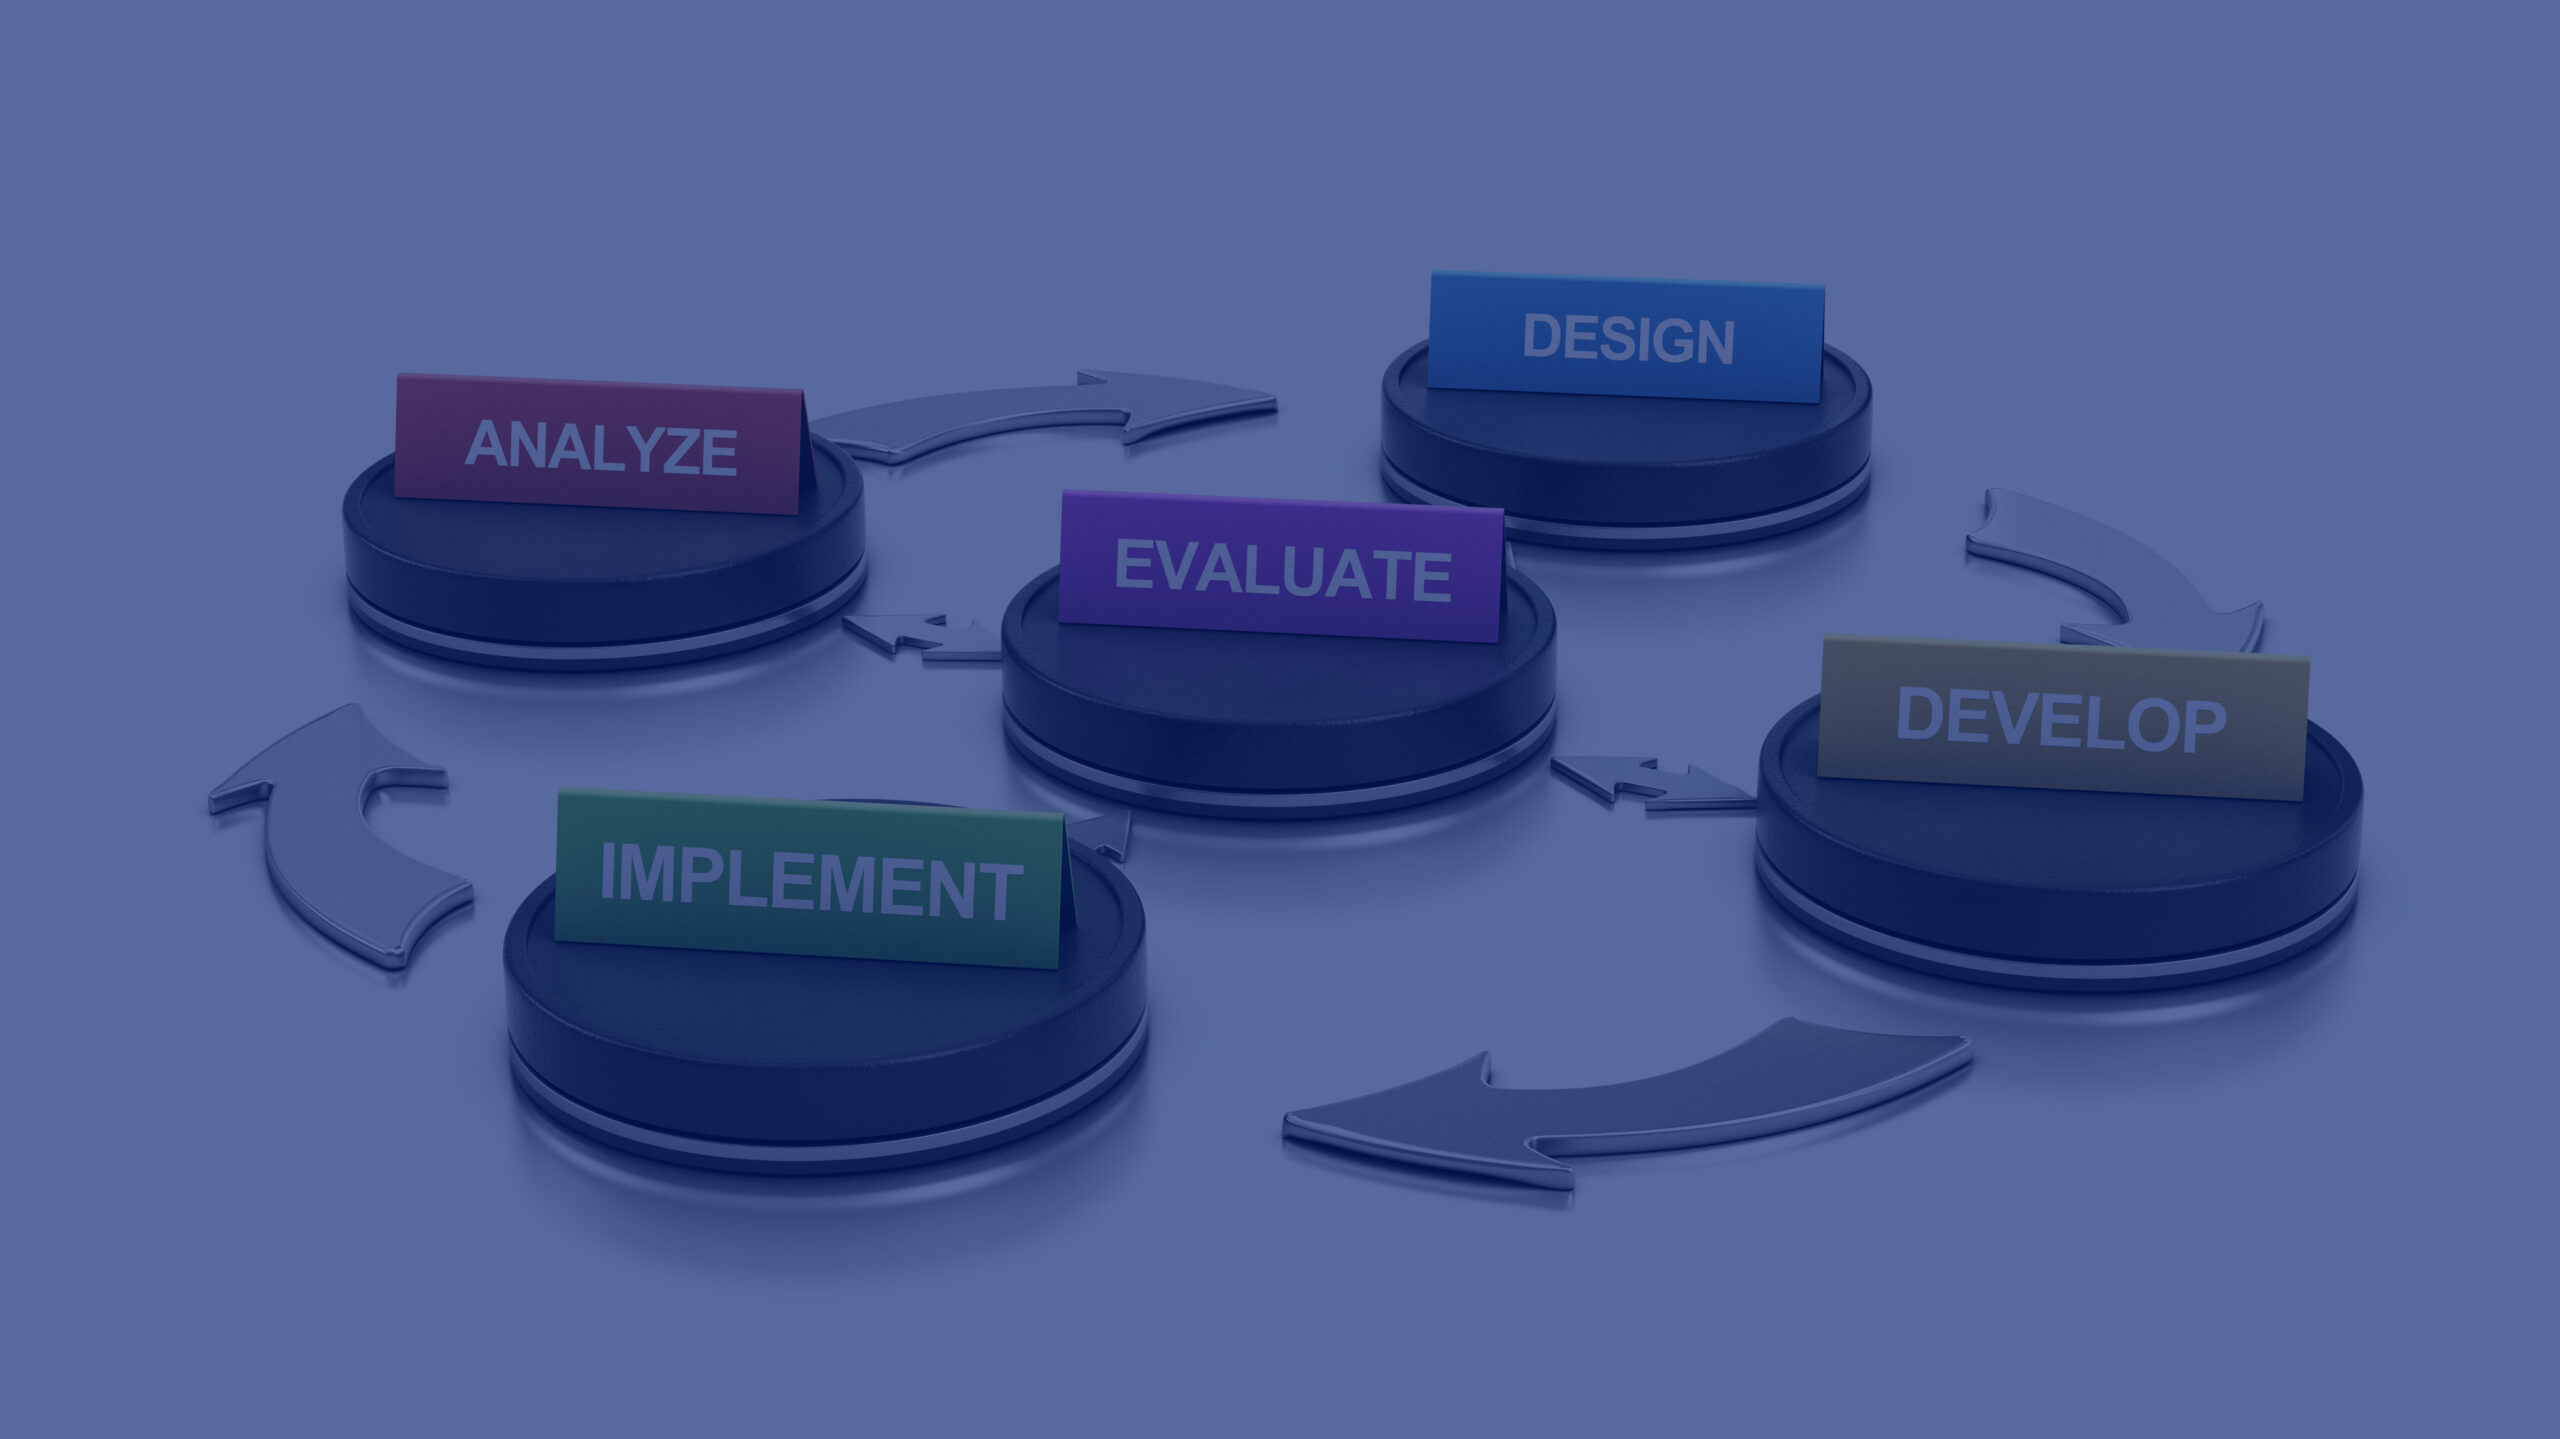 3D illustration of the five phases of ADDIE model over white background. 3D illustration to use as a guideline to build a training program